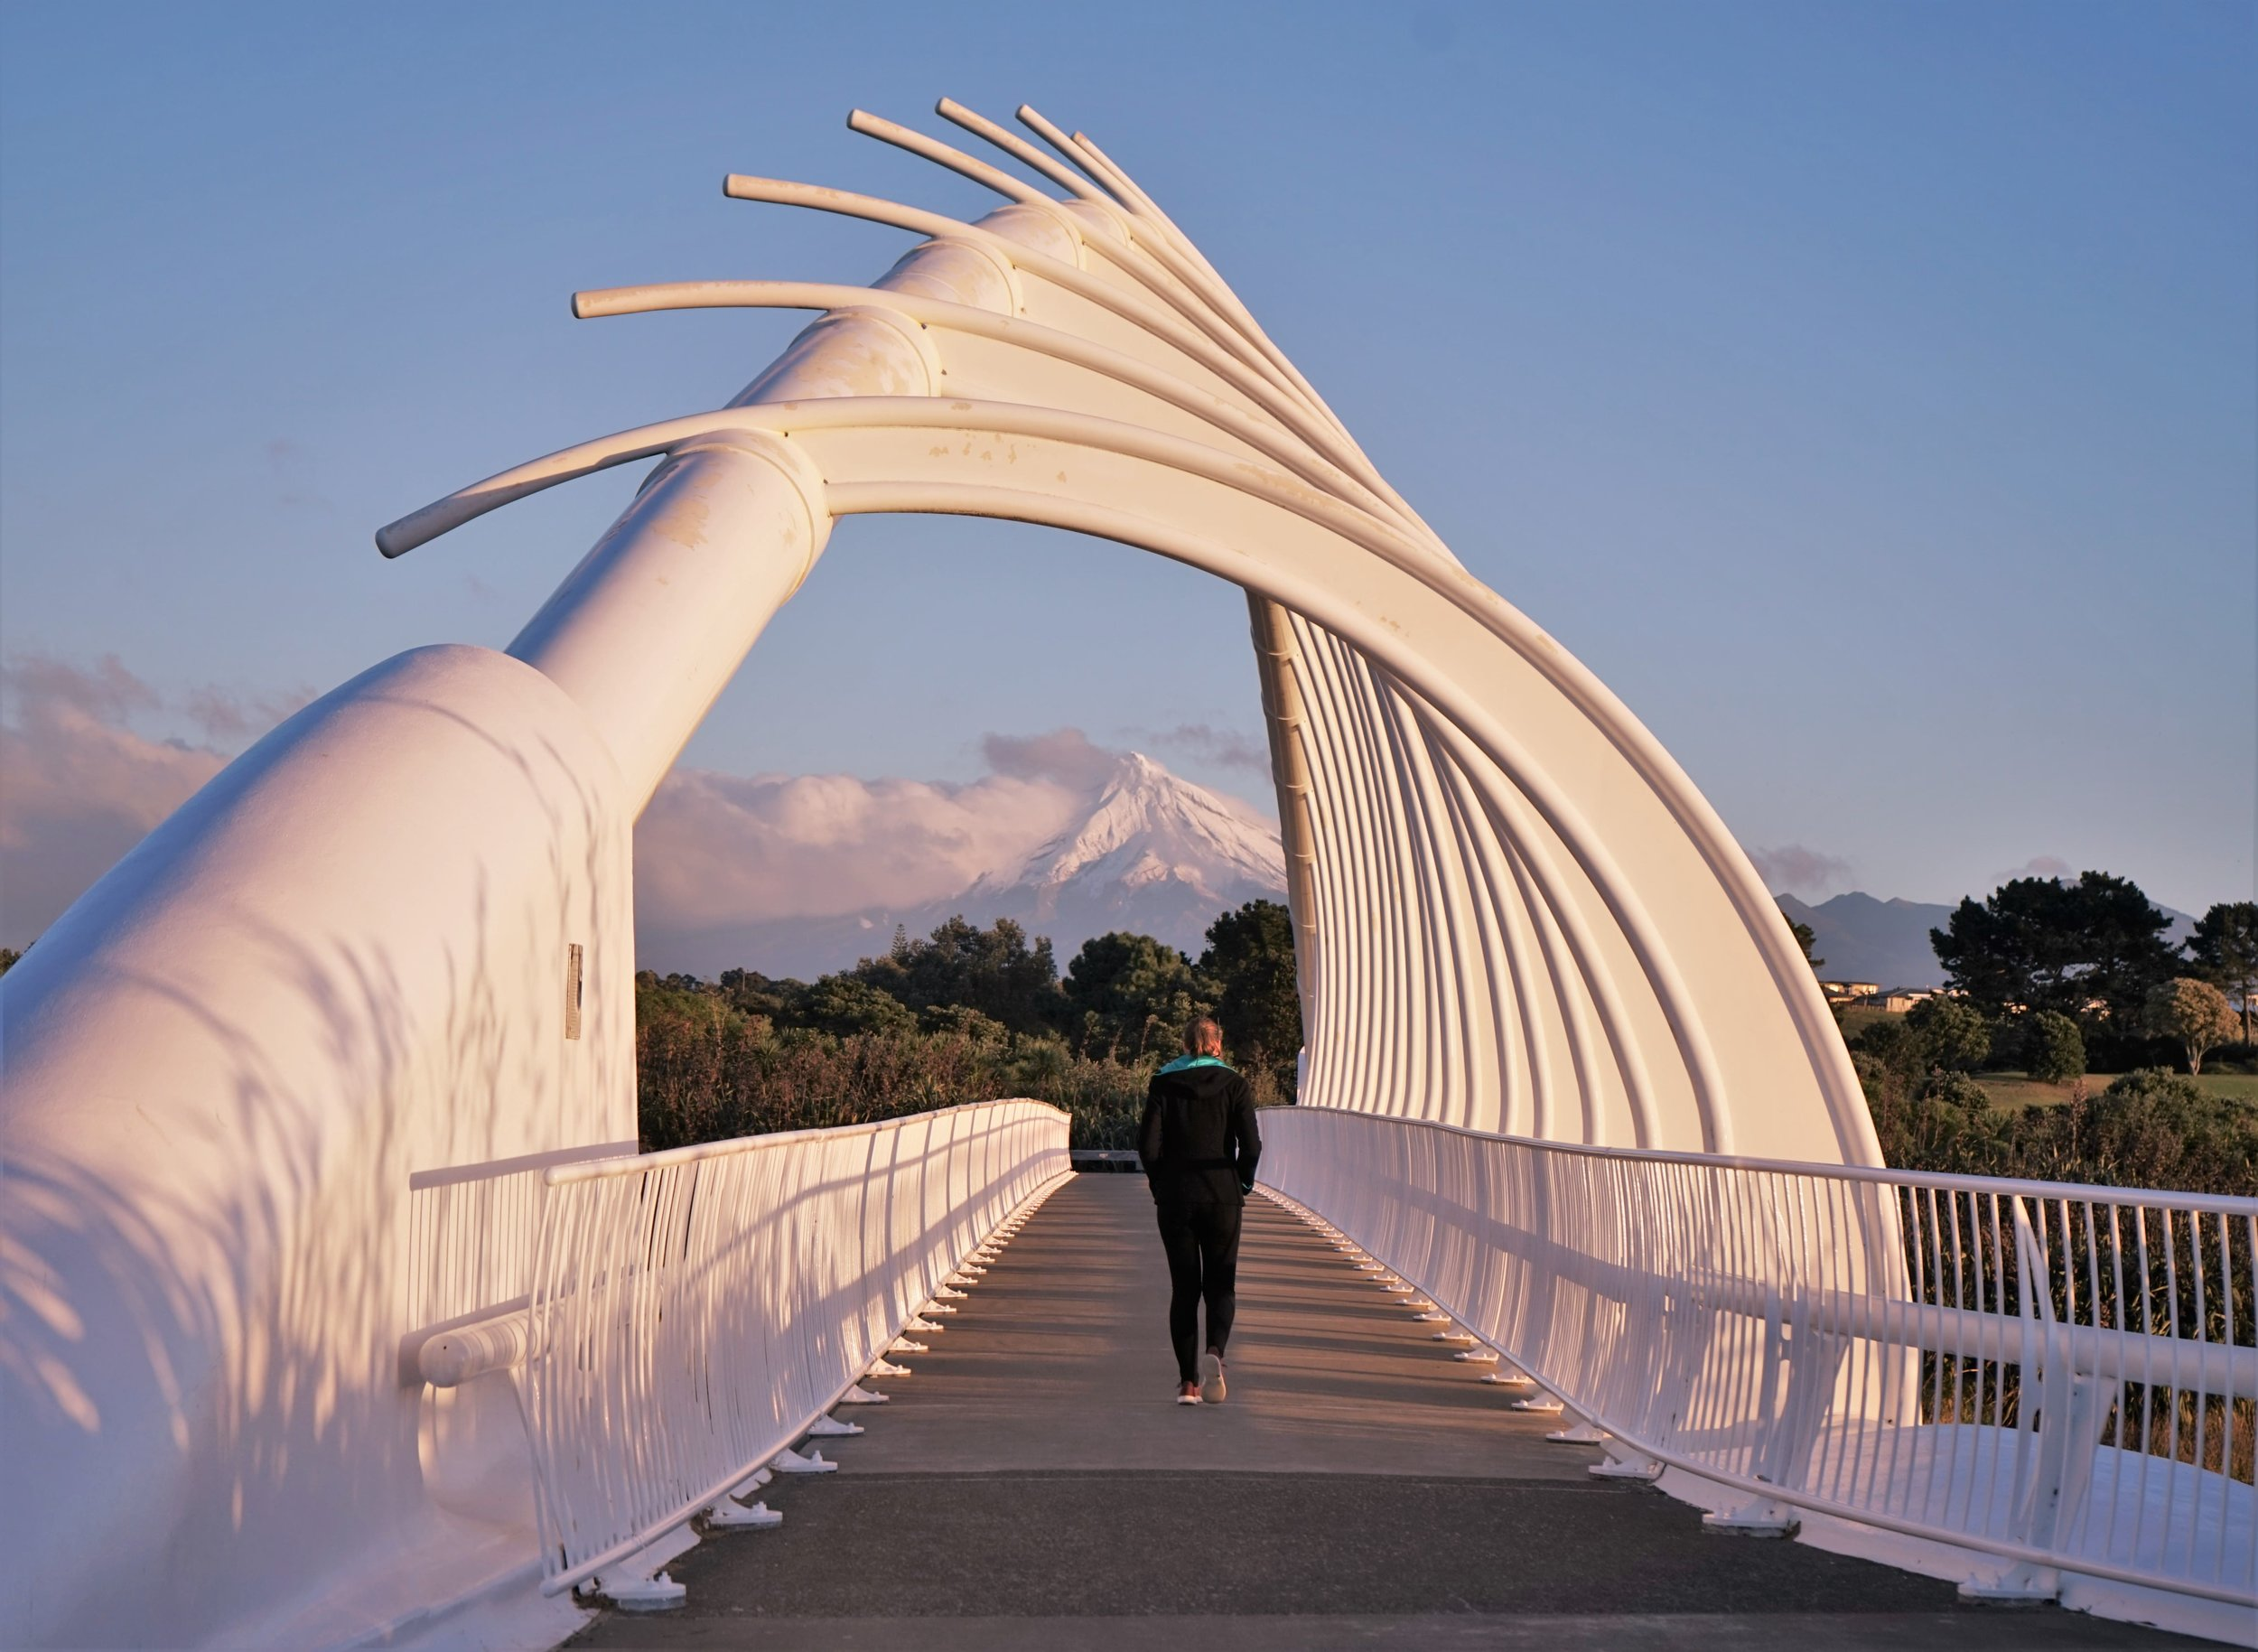 One of the best things to see in New Plymouth is the Te Rewa Rewa bridge.